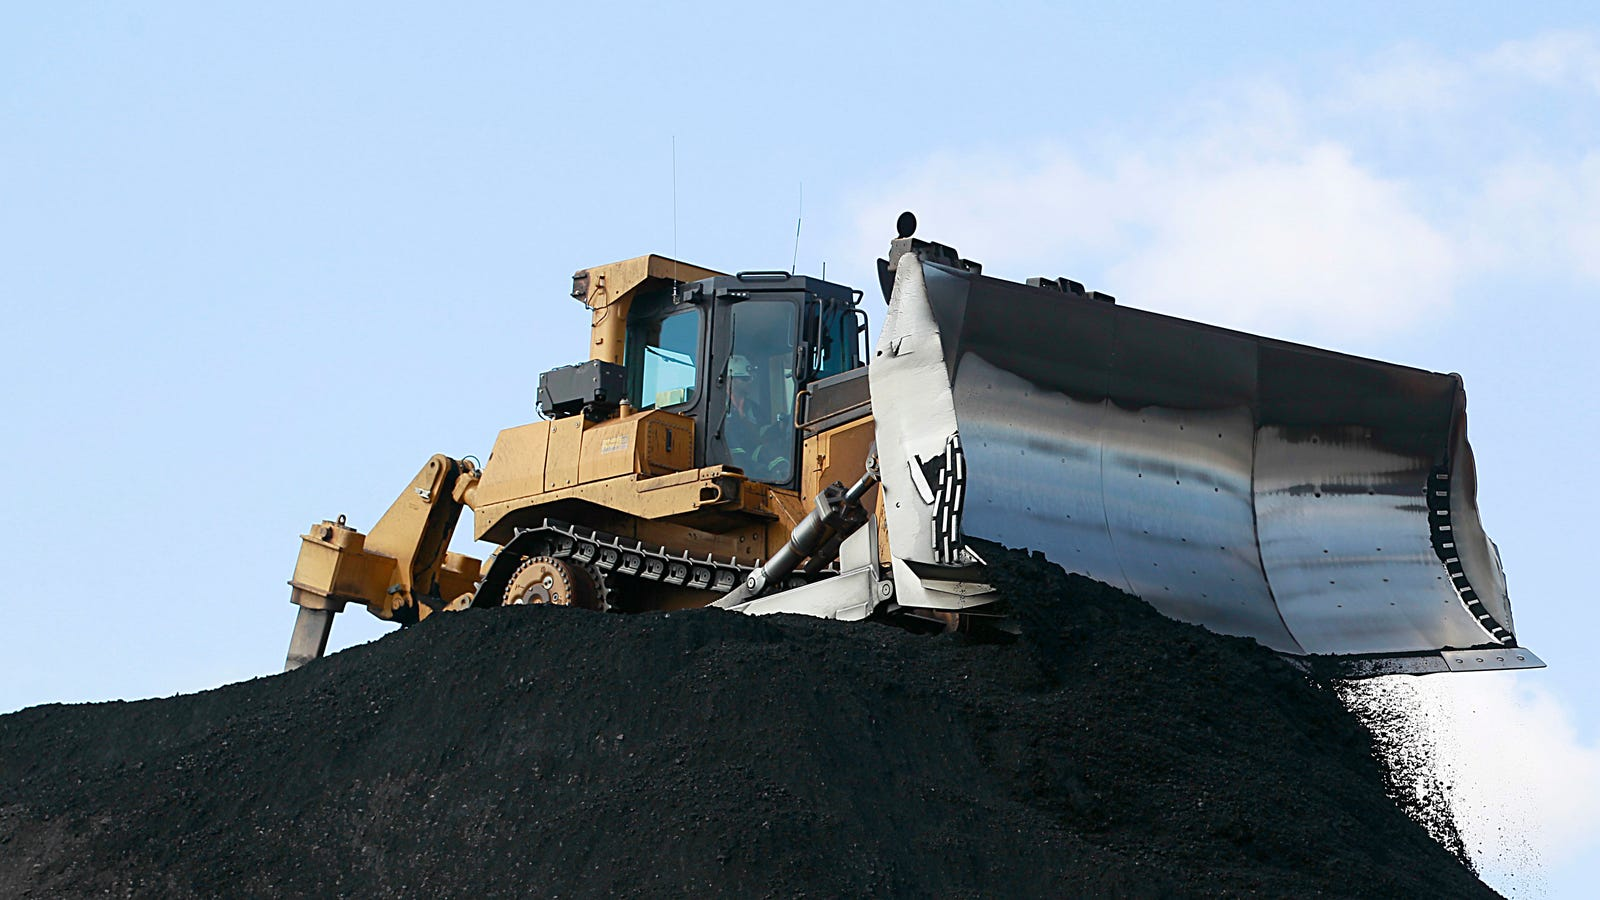 One of the World's Biggest Insurers Is Ditching Coal